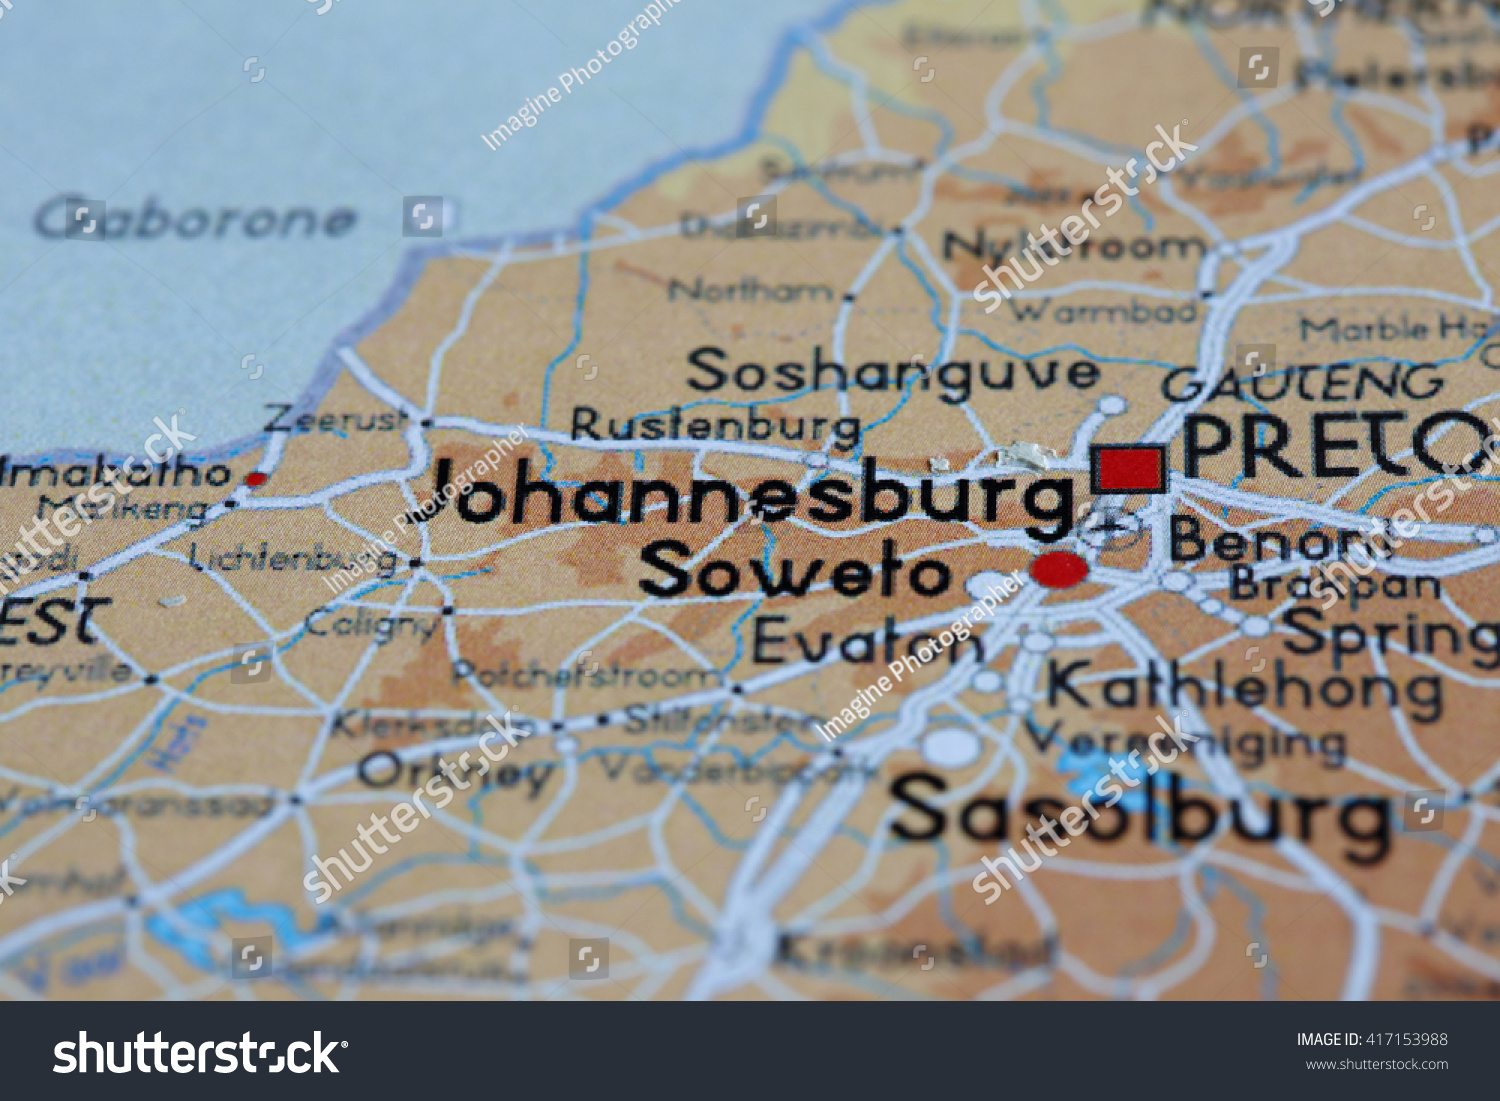 Selective Focus Map View Johannesburg Paper Stock Photo - Johannesburg germany map